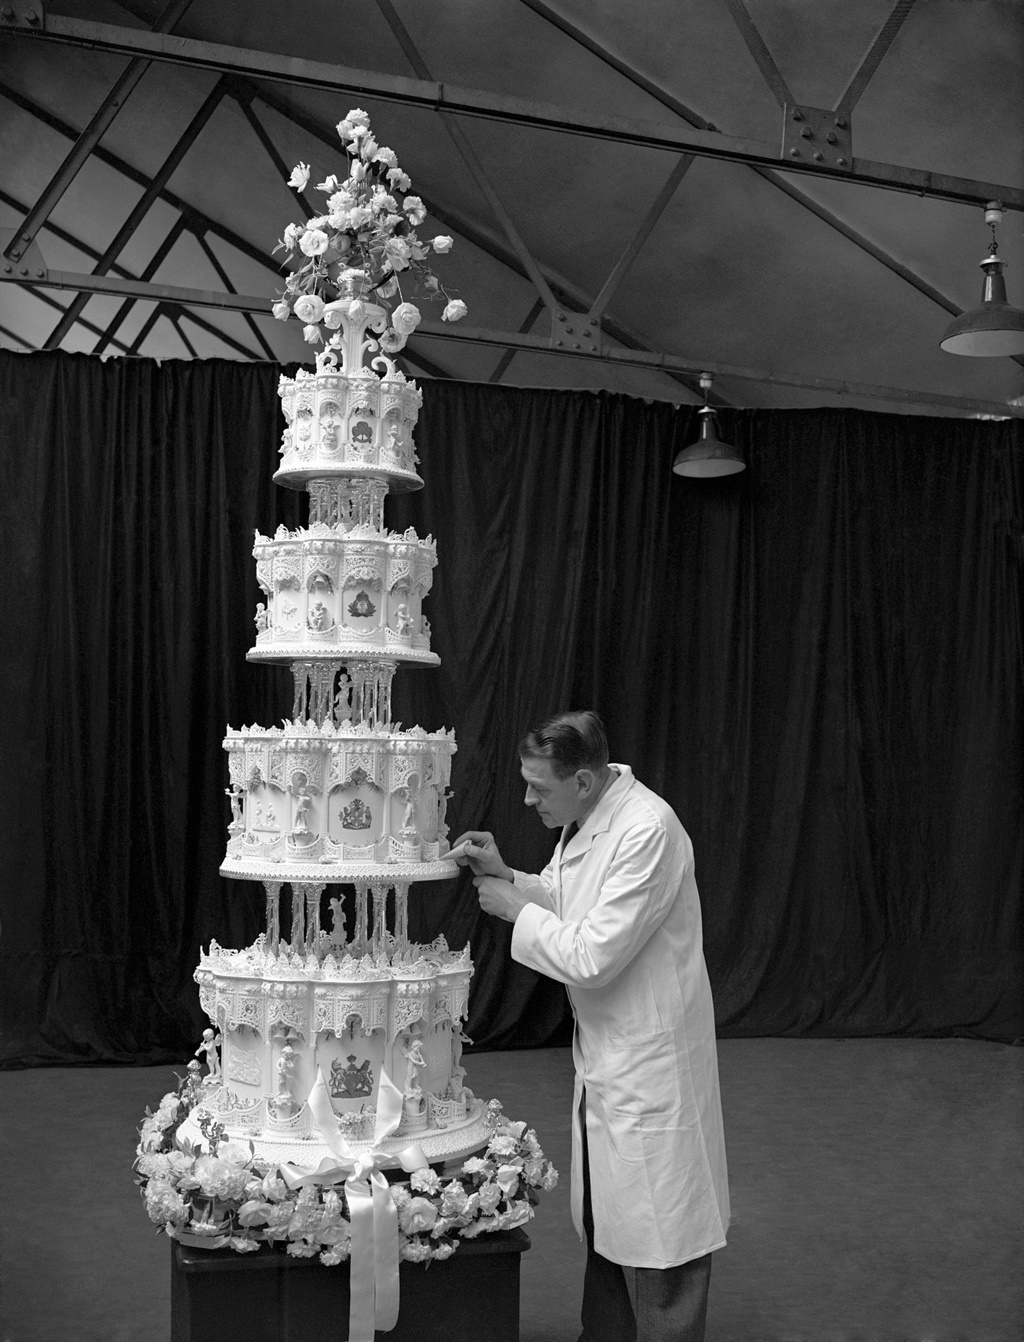 queen elizabeth ii and prince philip 1947 the four tier cake